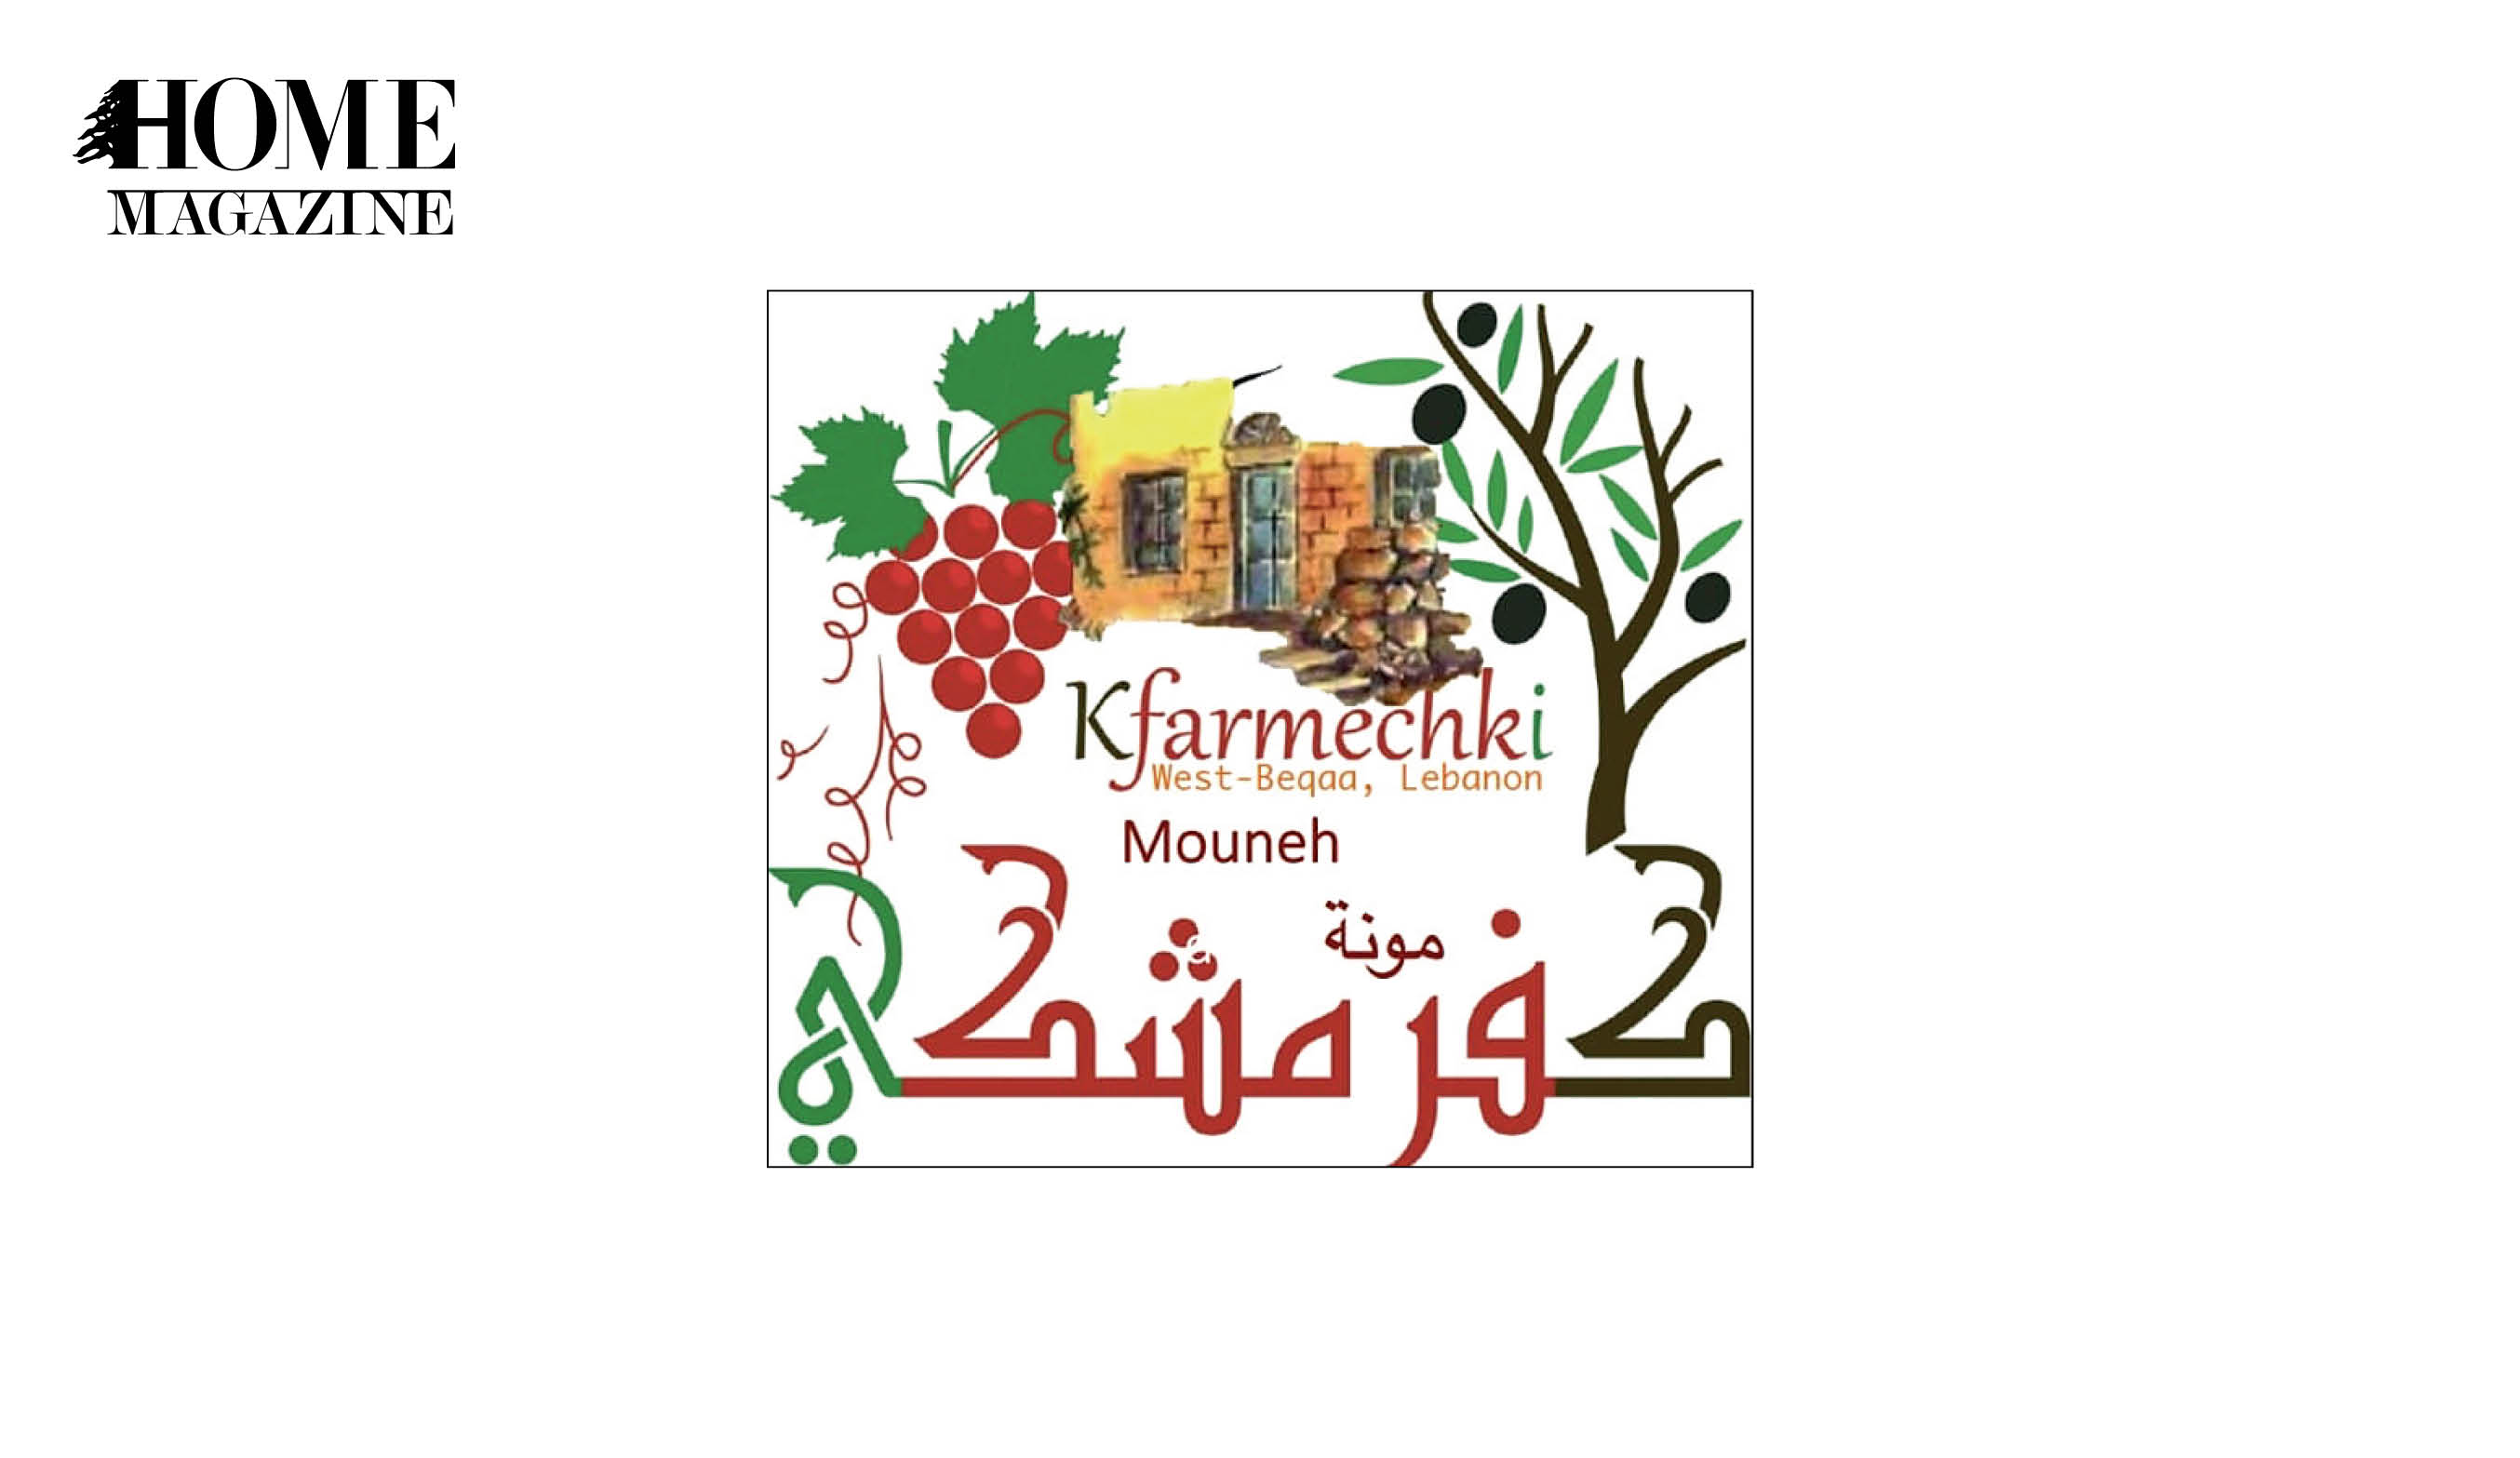 Kfarmishki text with drawing of trees, grapes and a house